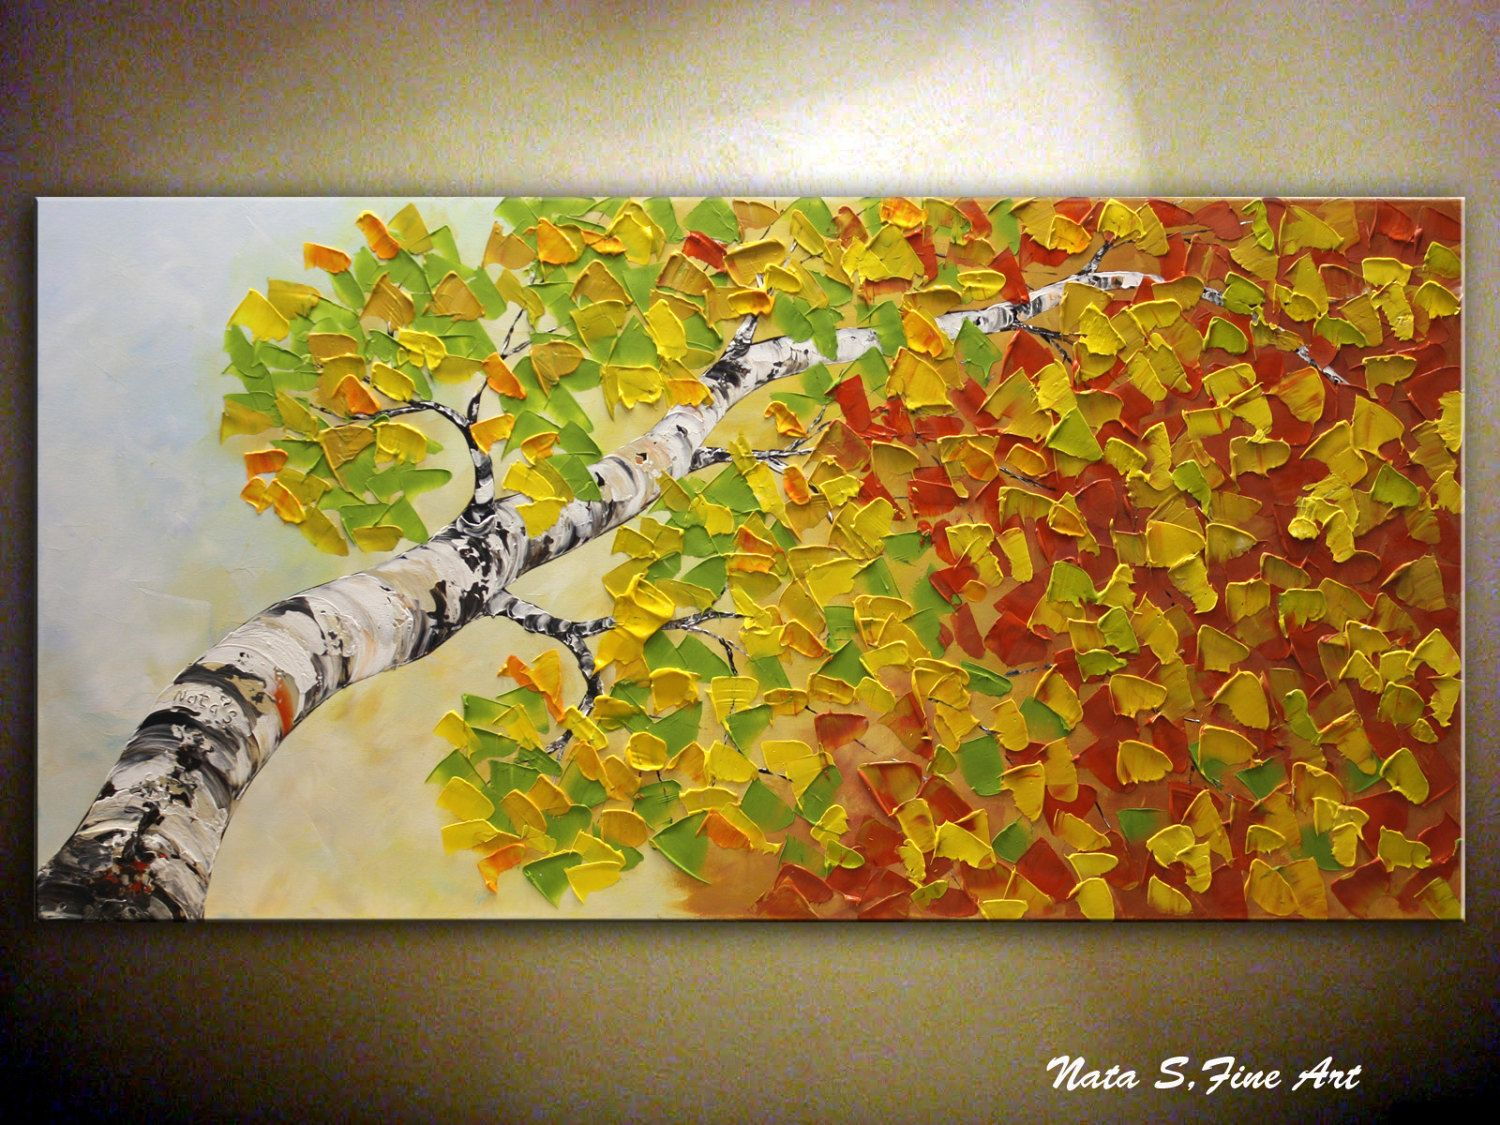 Contemporary artwork for the home - Original Large Birch Tree Painting Abstract Contemporary Artwork Impasto Palette Knife Birch Tree Painting Home